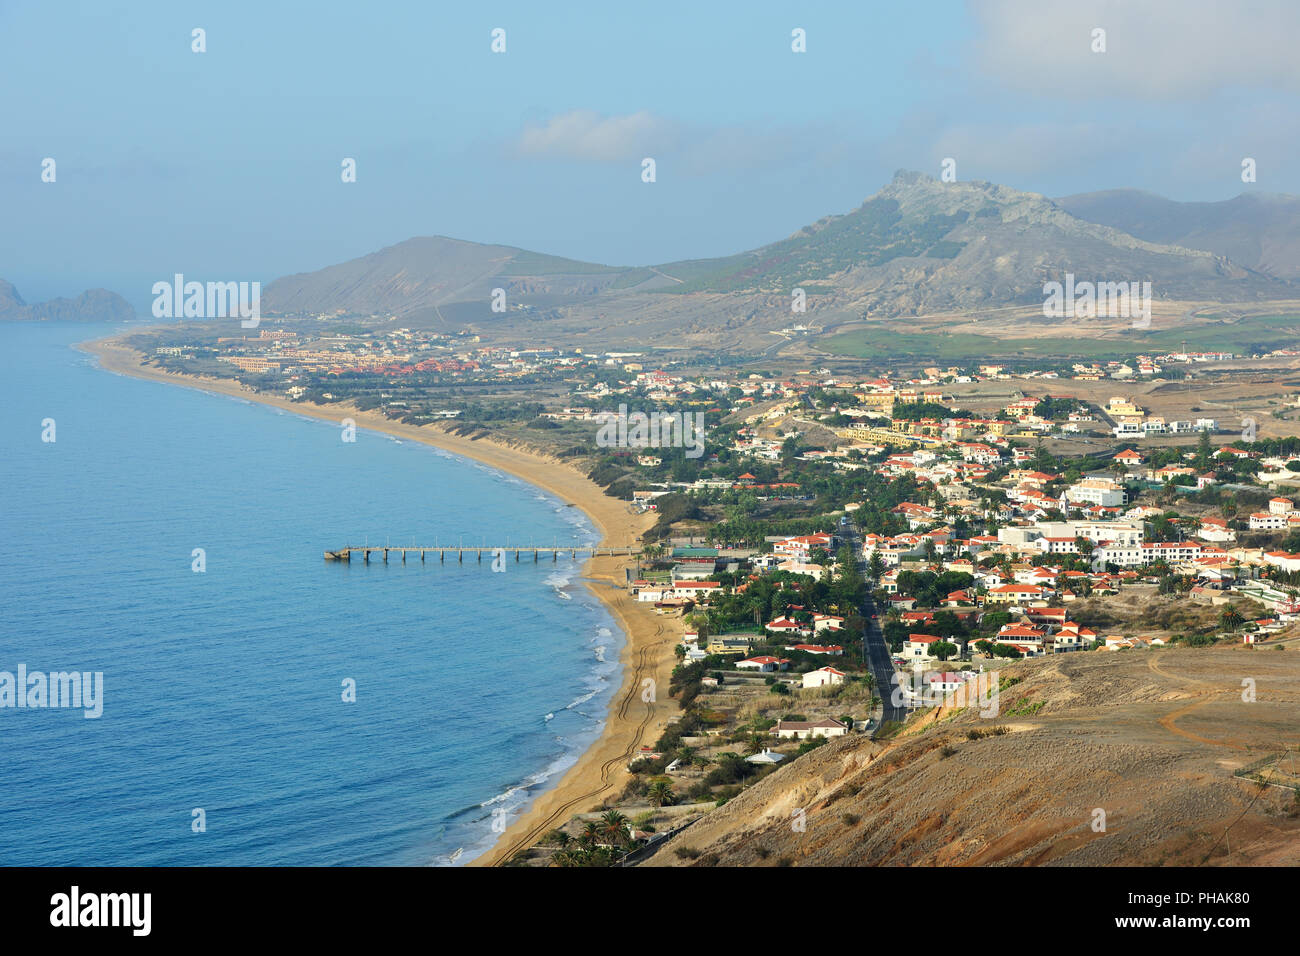 Vila Baleira, capital city of Porto Santo island. Madeira, Portugal - Stock Image